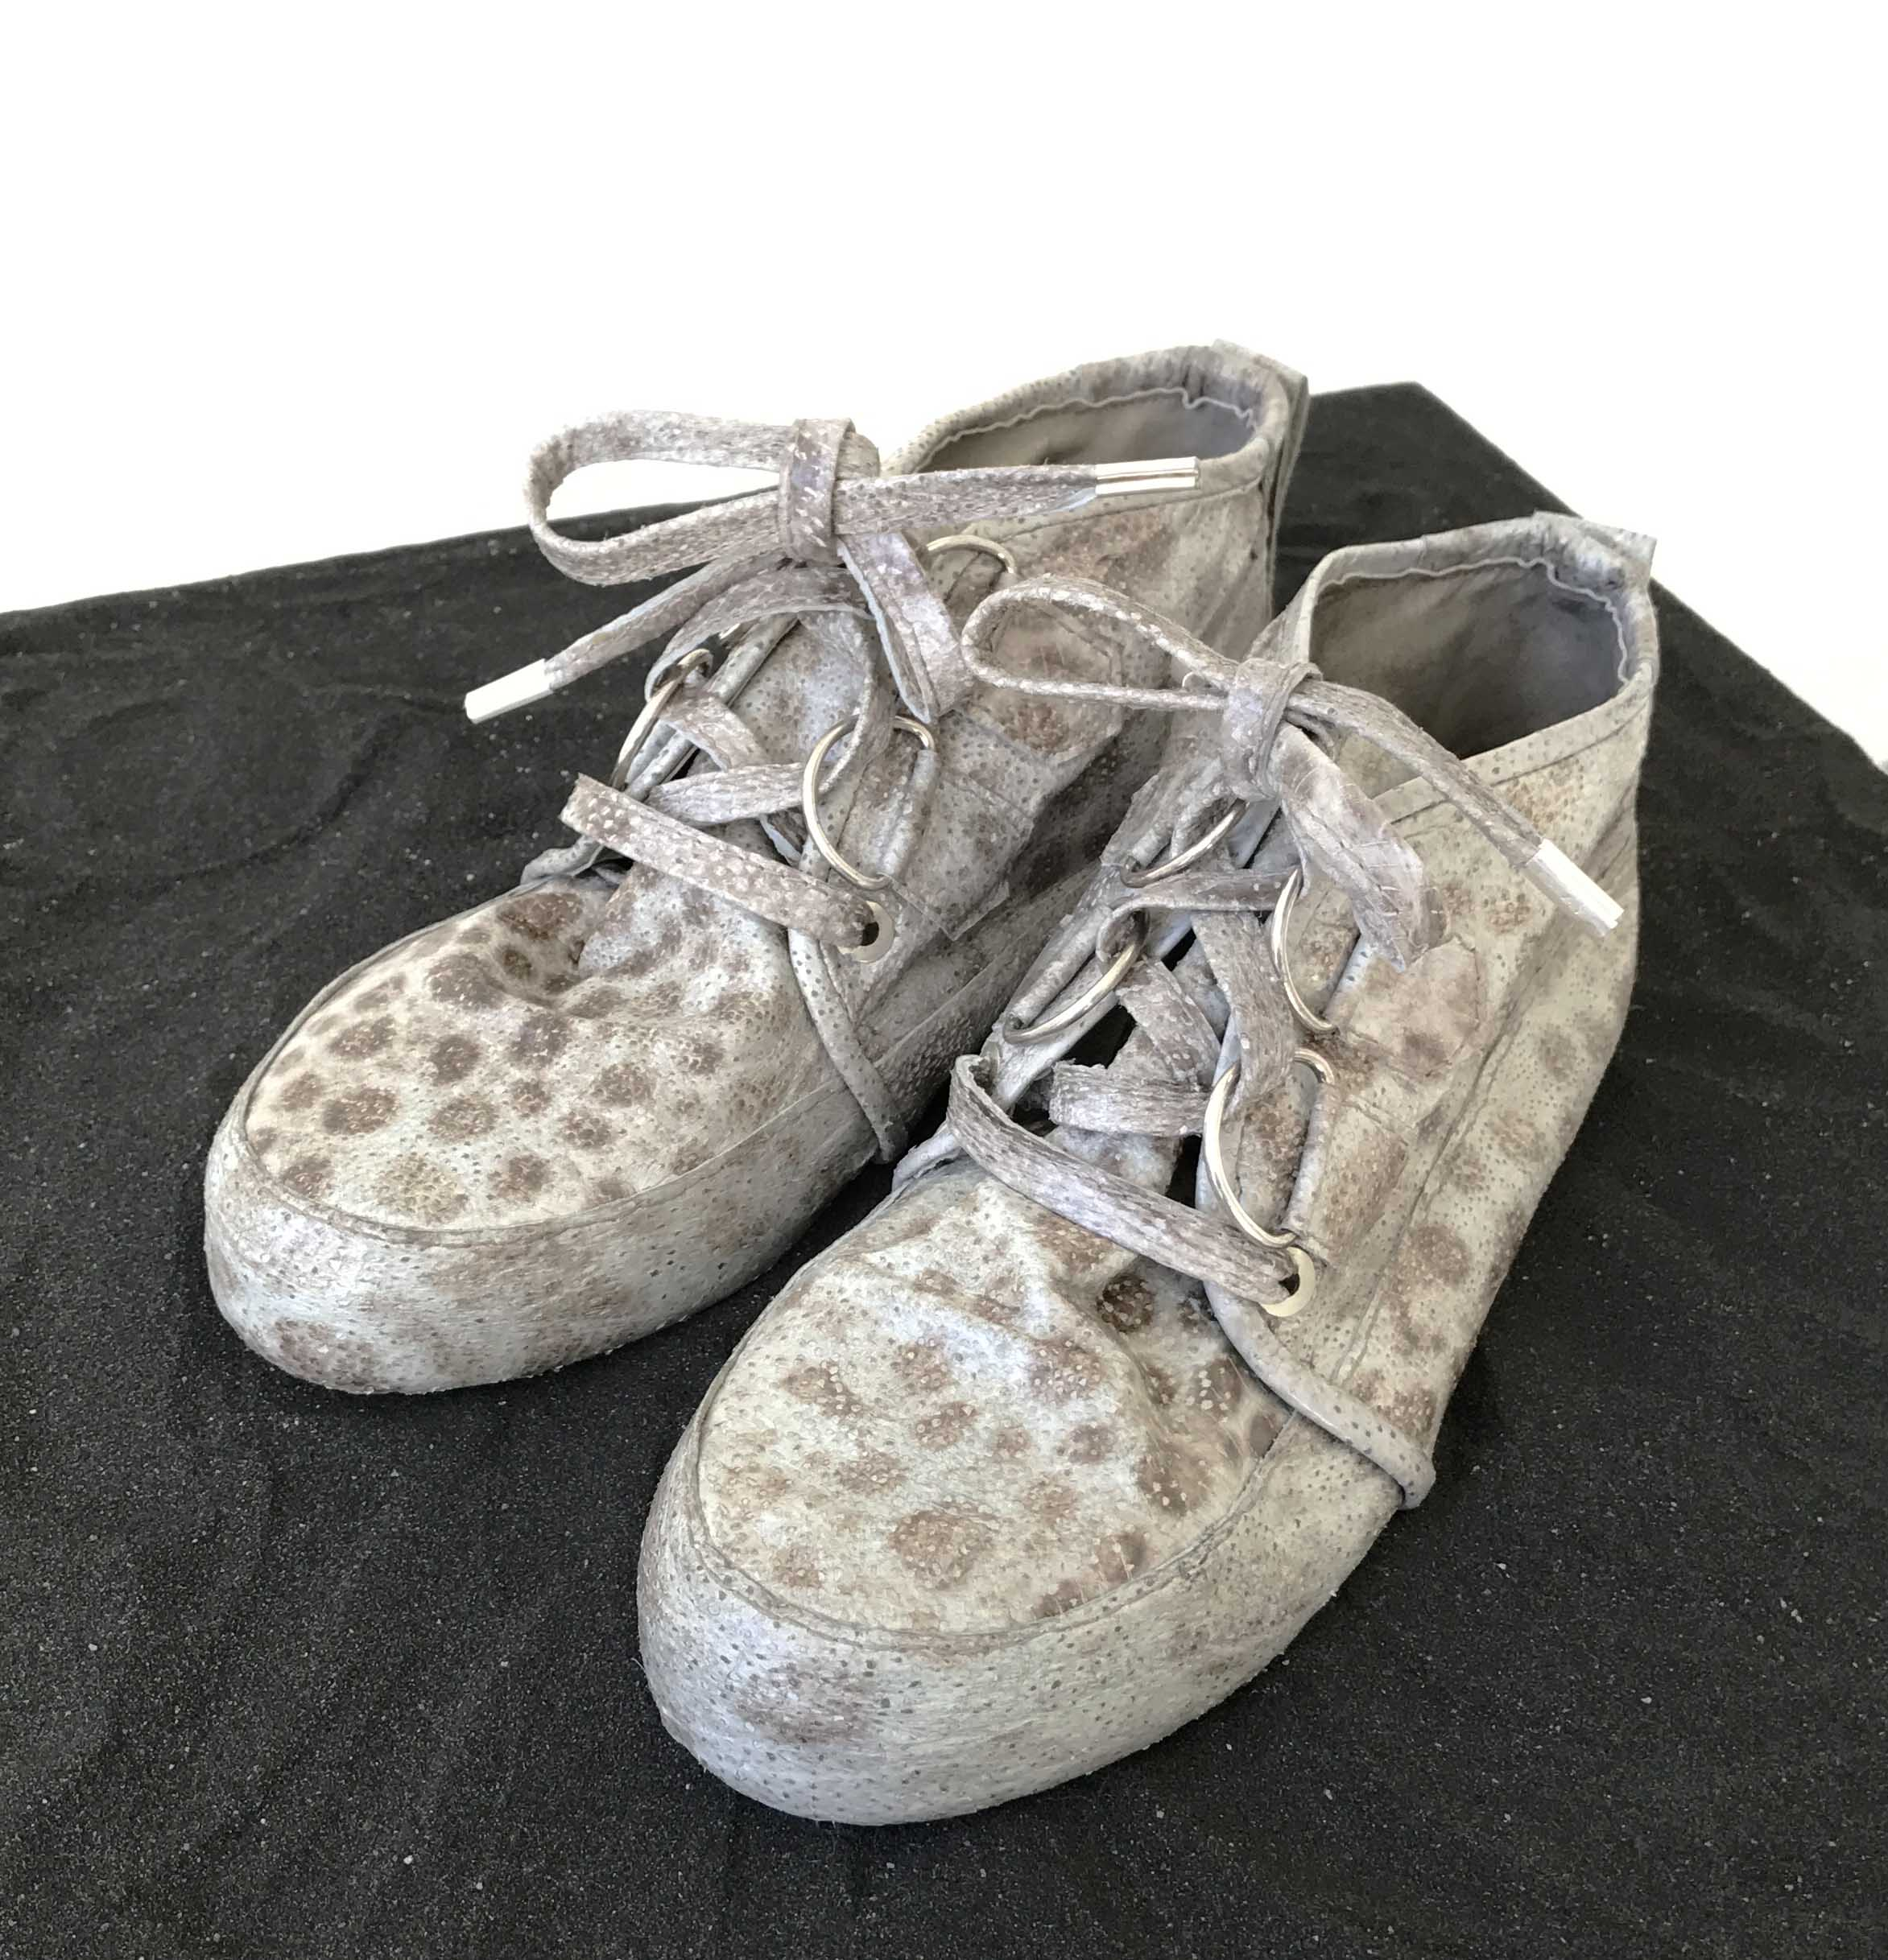 'Coming Home,' the Icelandic Wolfish skin shoes that tied the show together.